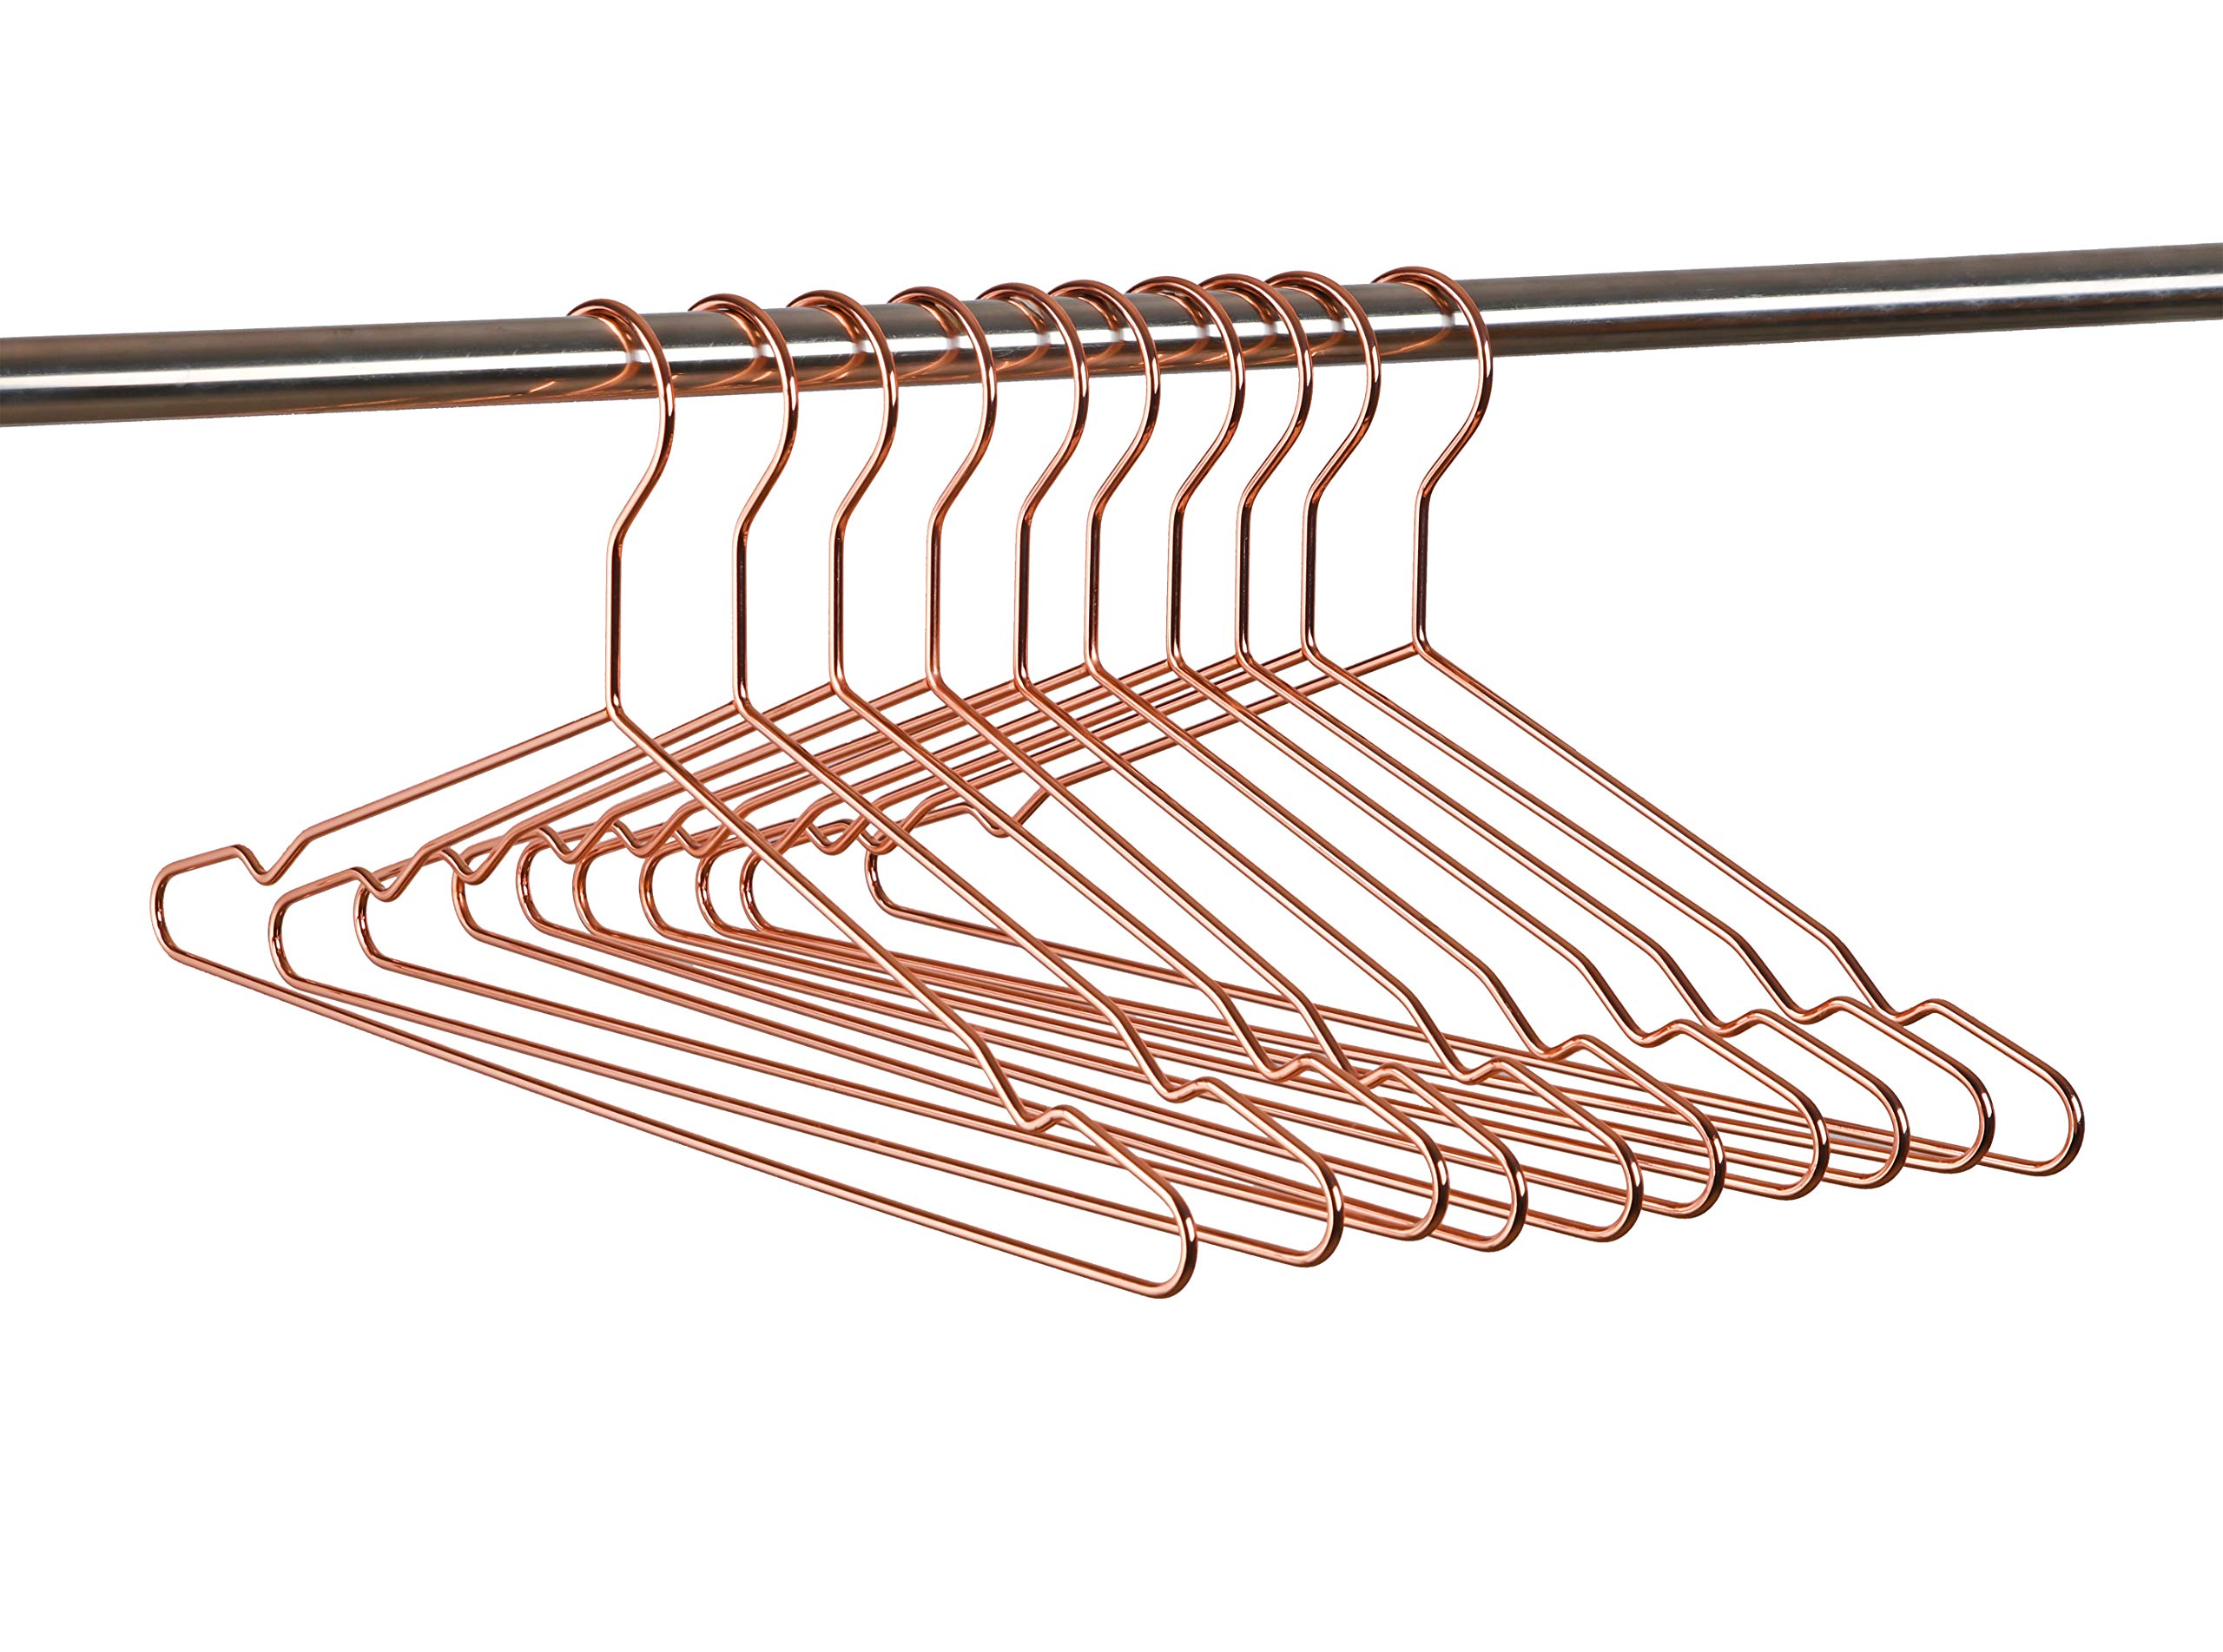 Amber Home Heavy Duty Durable Rose Copper Gold Shiny Metal Wire Clothes Hanger for Suit Coat with Notches 10 Pack